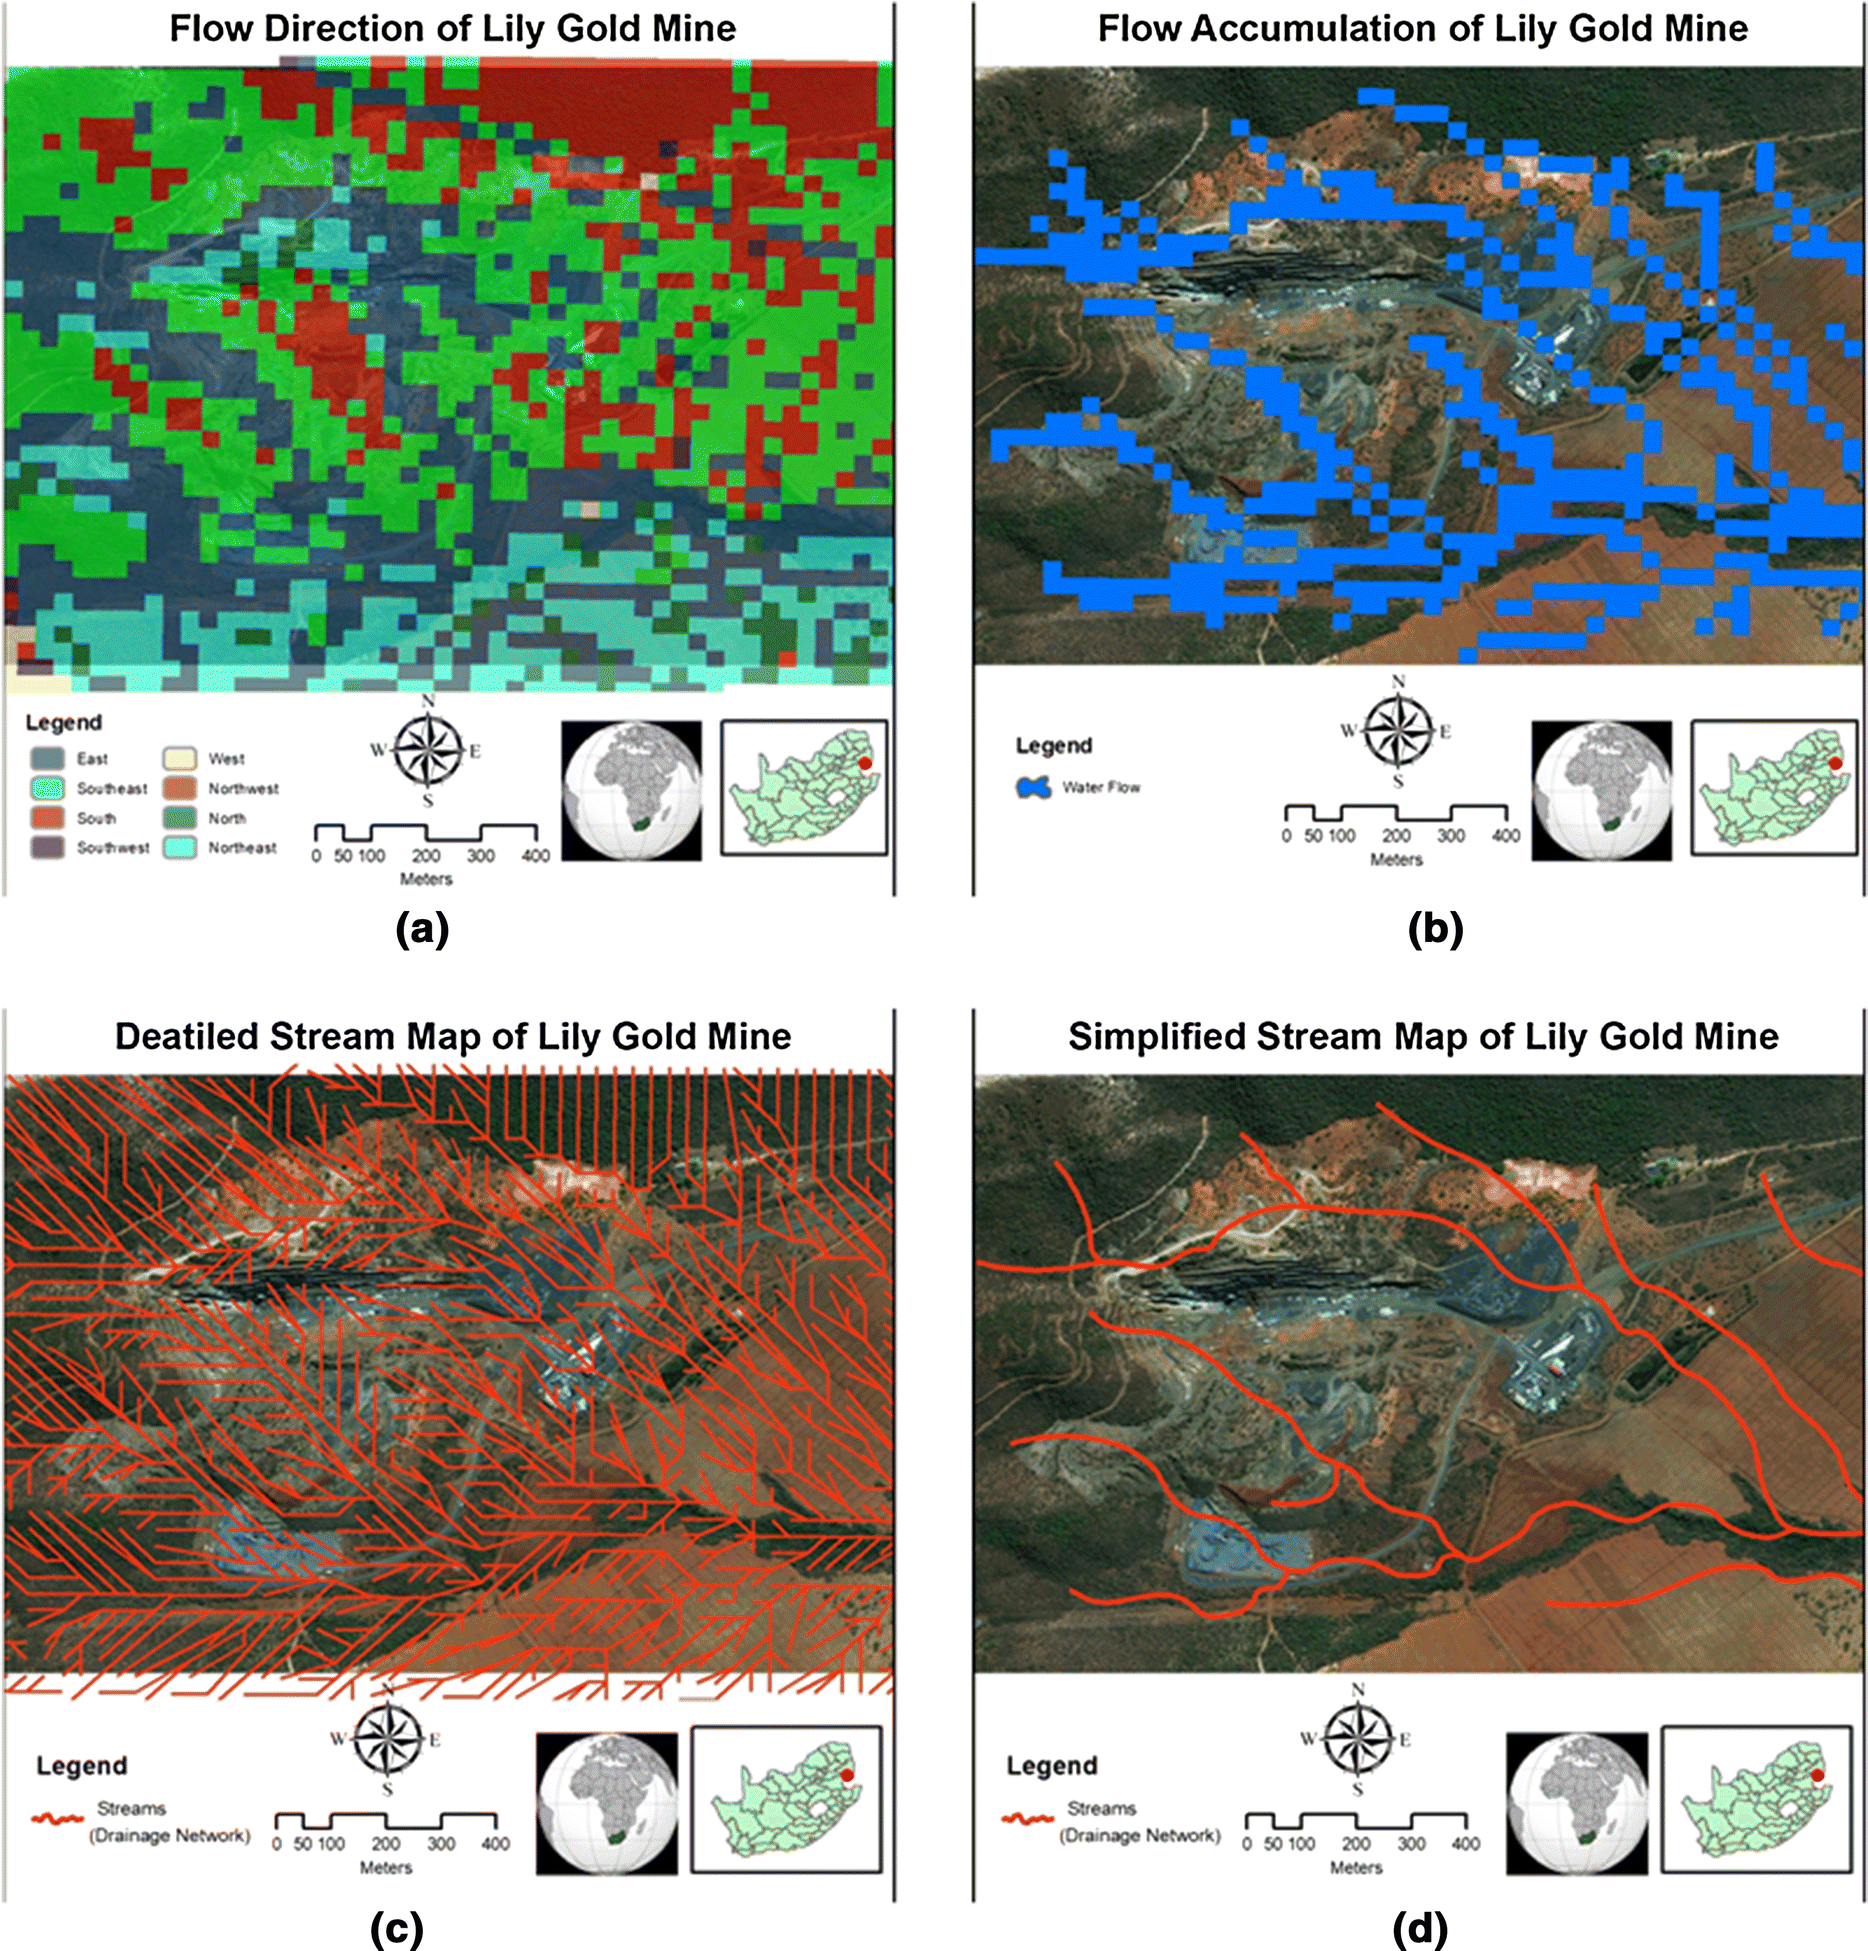 Modeling and analysis of Lily gold mine disasters using